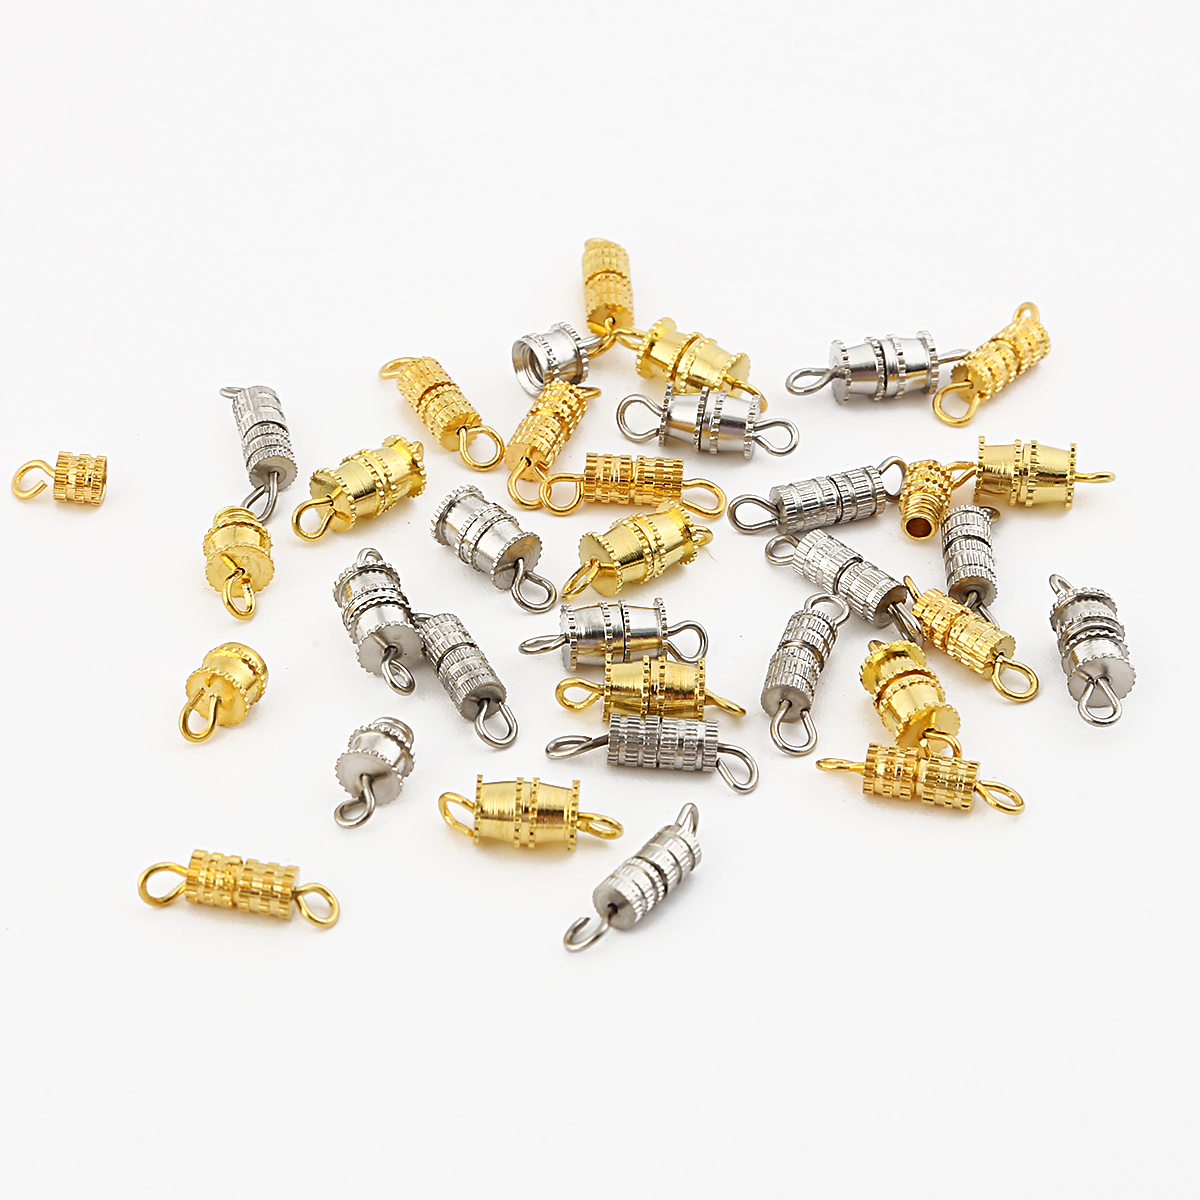 10/20pcs Cylinder Fasteners Buckles Closed Beading End Clasp Screw Clasps For DIY Bracelet Necklace Connectors Jewelry Making